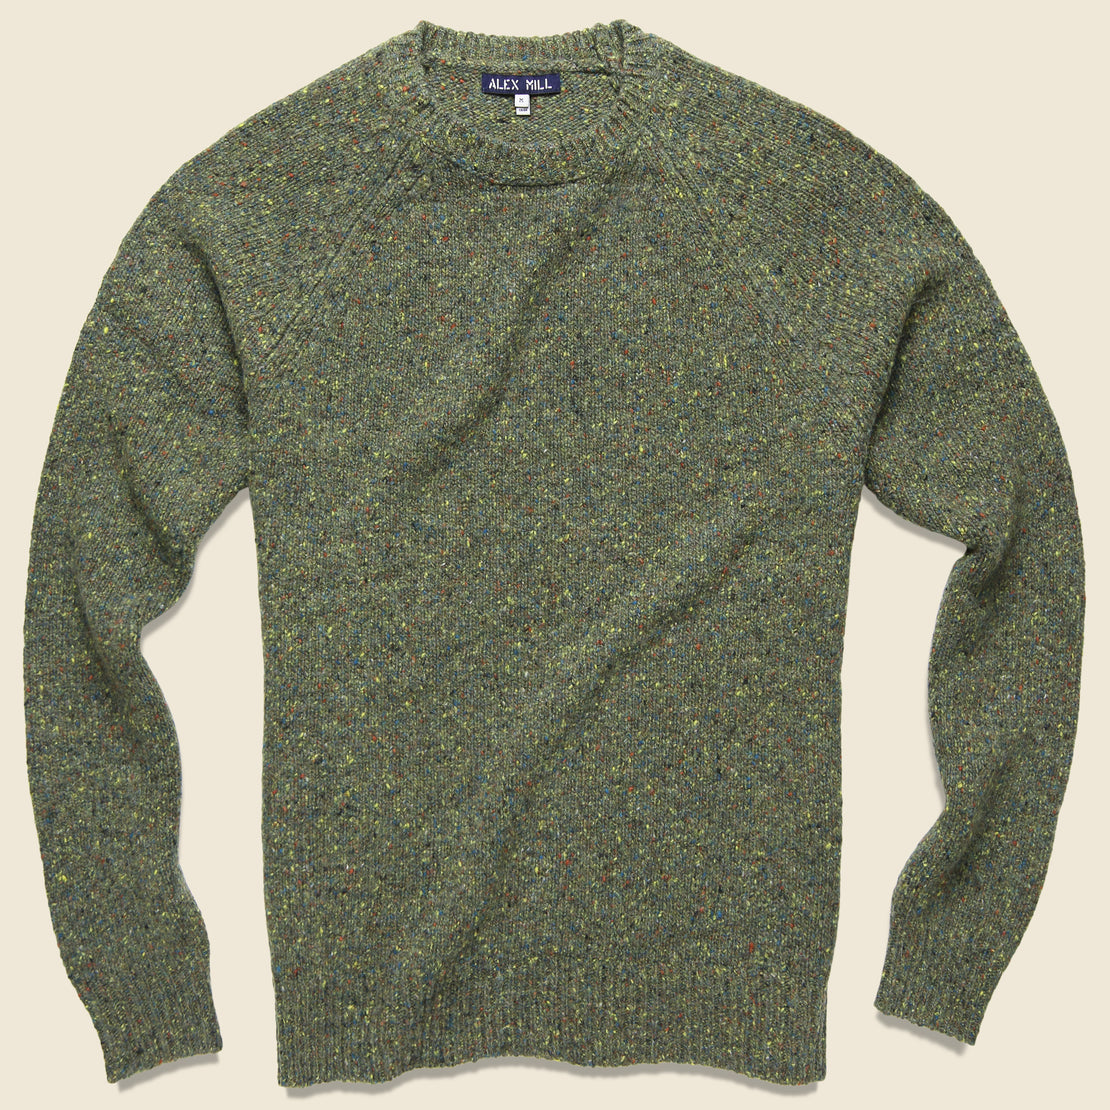 Alex Mill Alpaca Donegal Crew Sweater - Riverbank Green